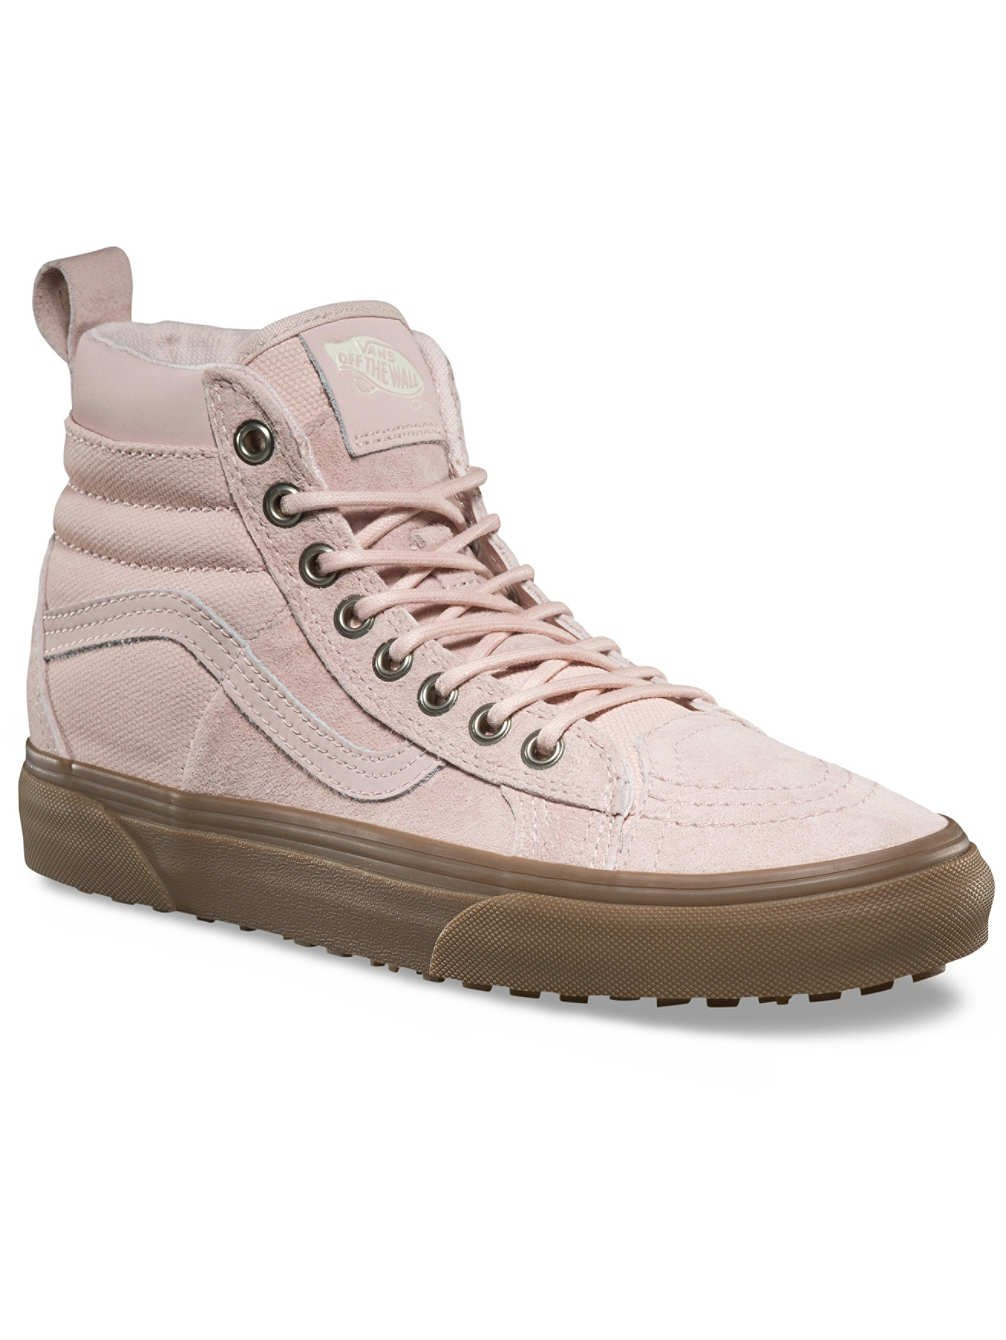 Vans Shoes Sk8-hi Shoes - Sepia Rose/Gum  41 EU|rosa